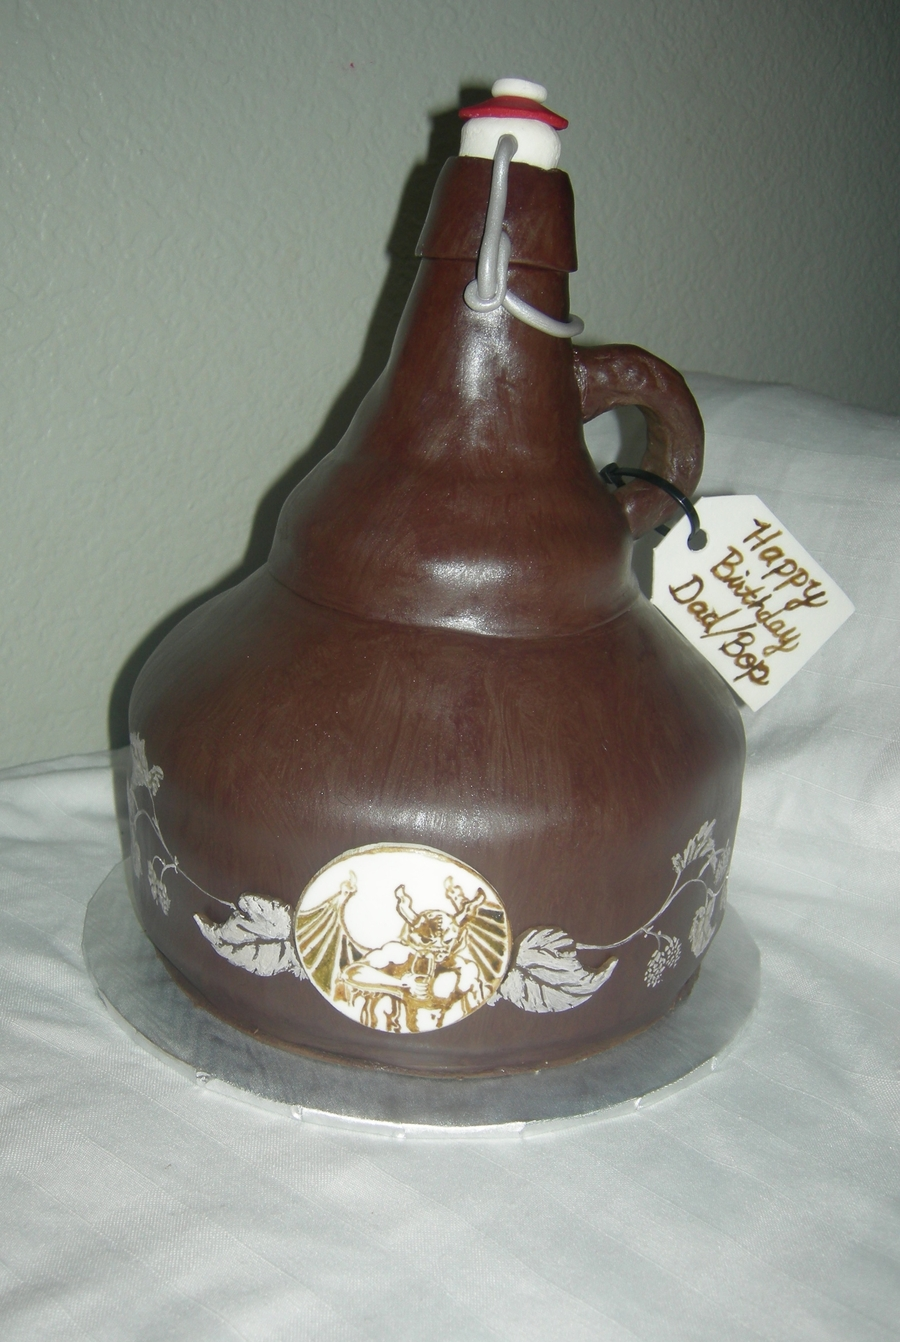 Growler Cake on Cake Central